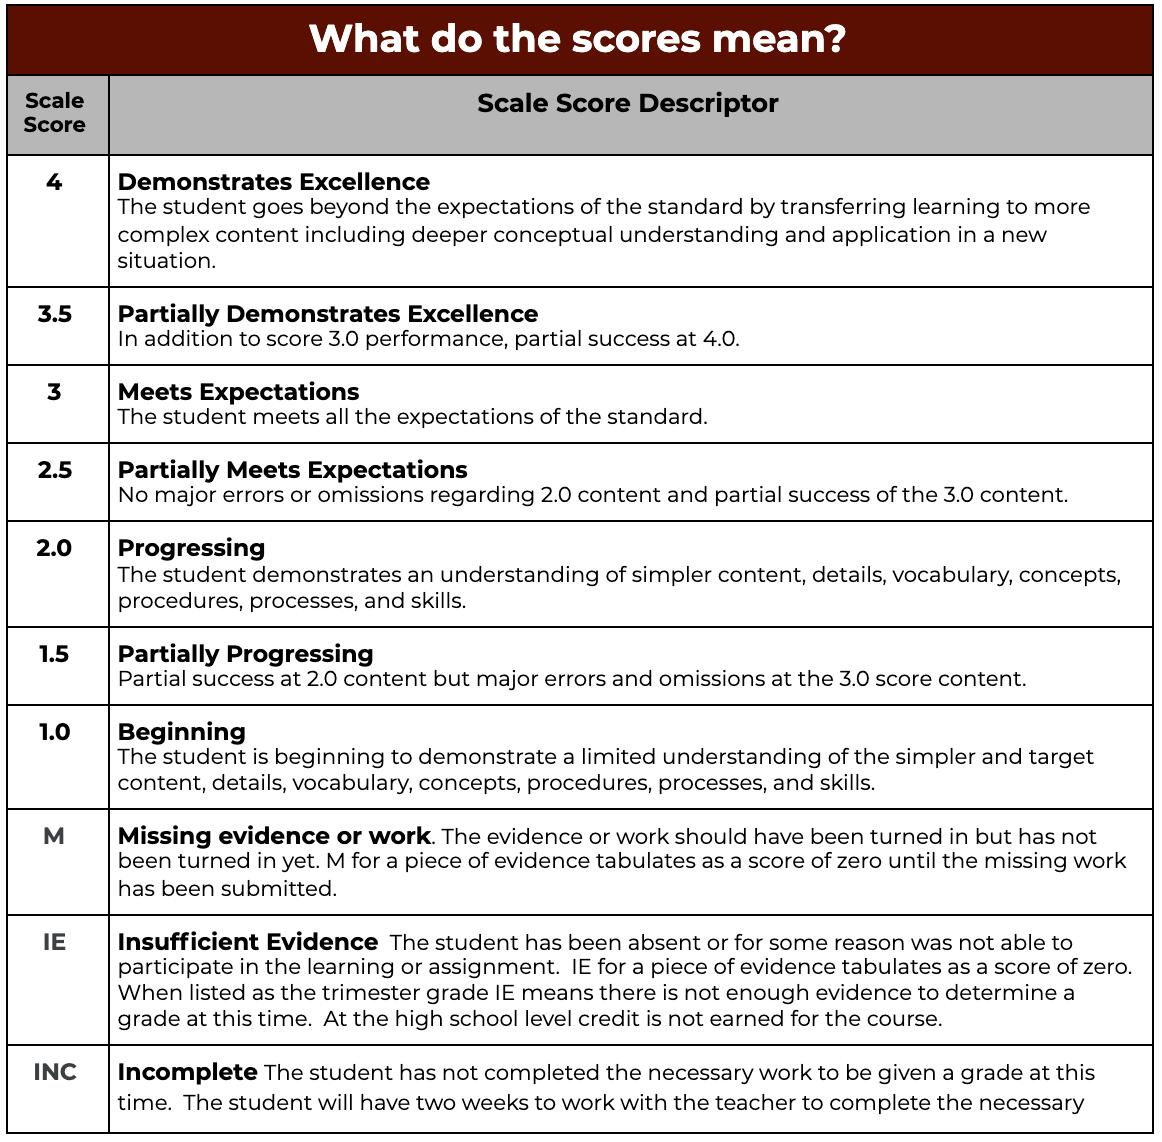 Scale Score Descriptors